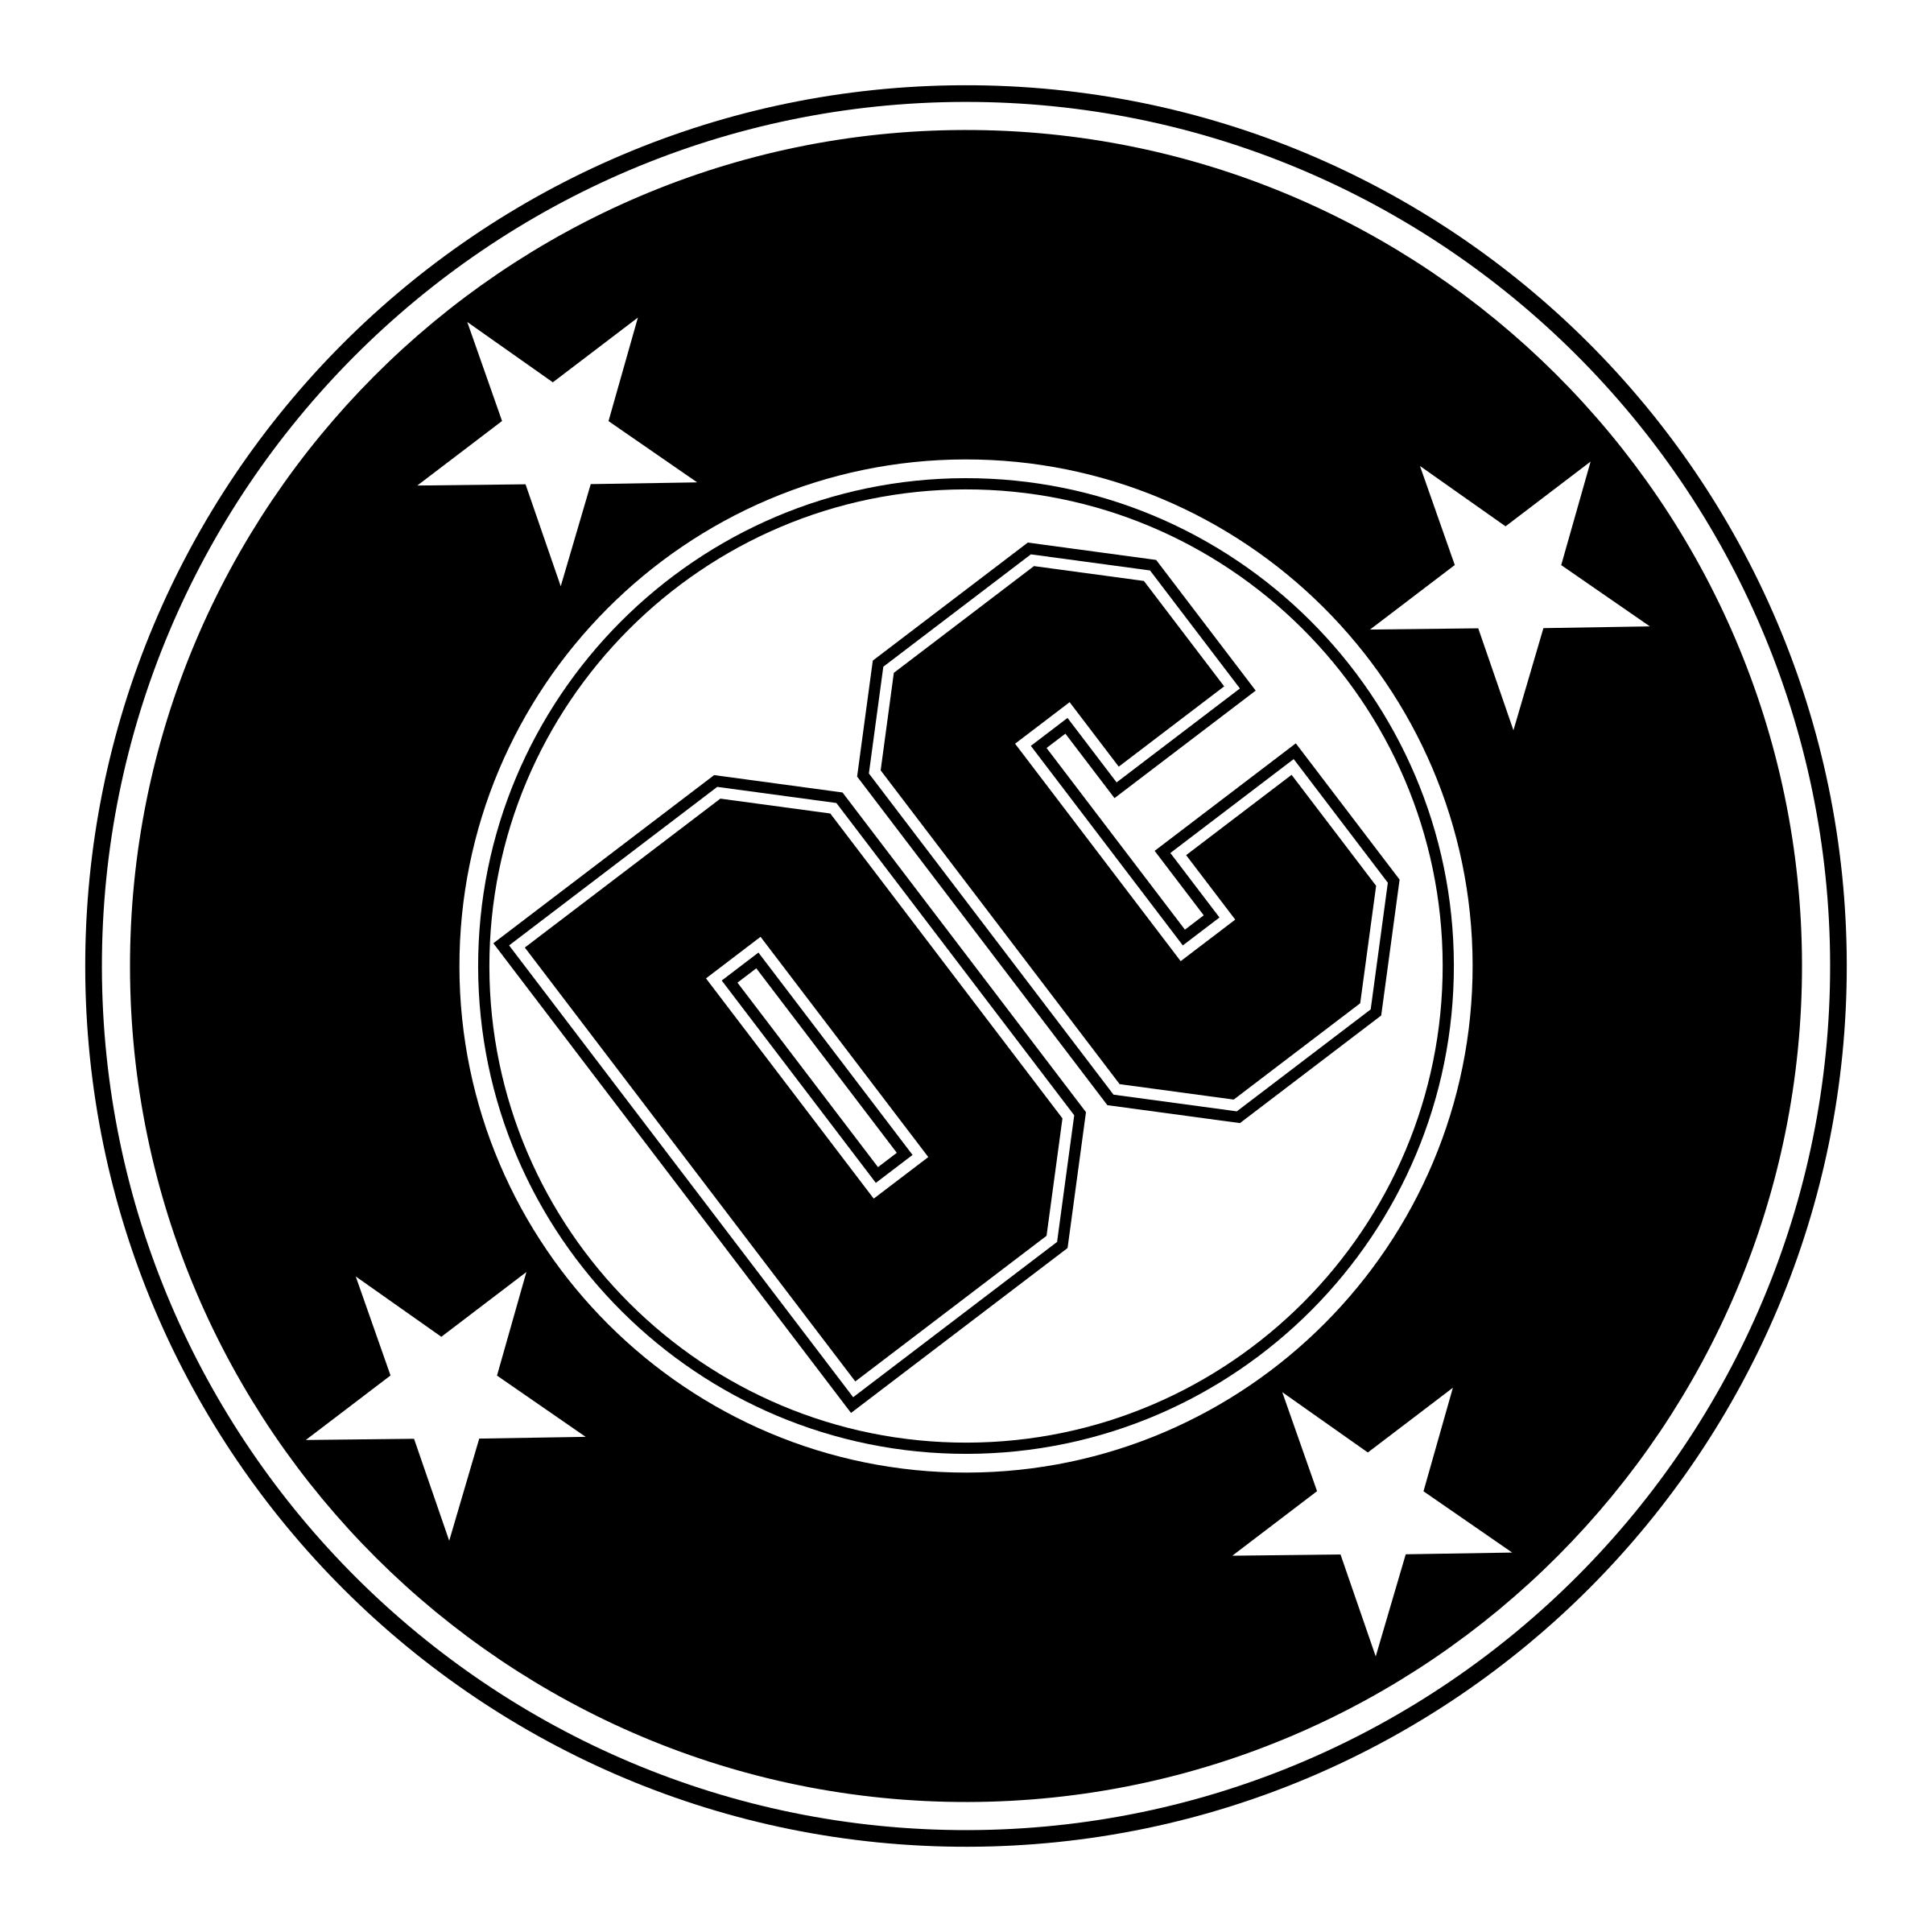 DC Logo - DC Comics Logo PNG Transparent & SVG Vector - Freebie Supply